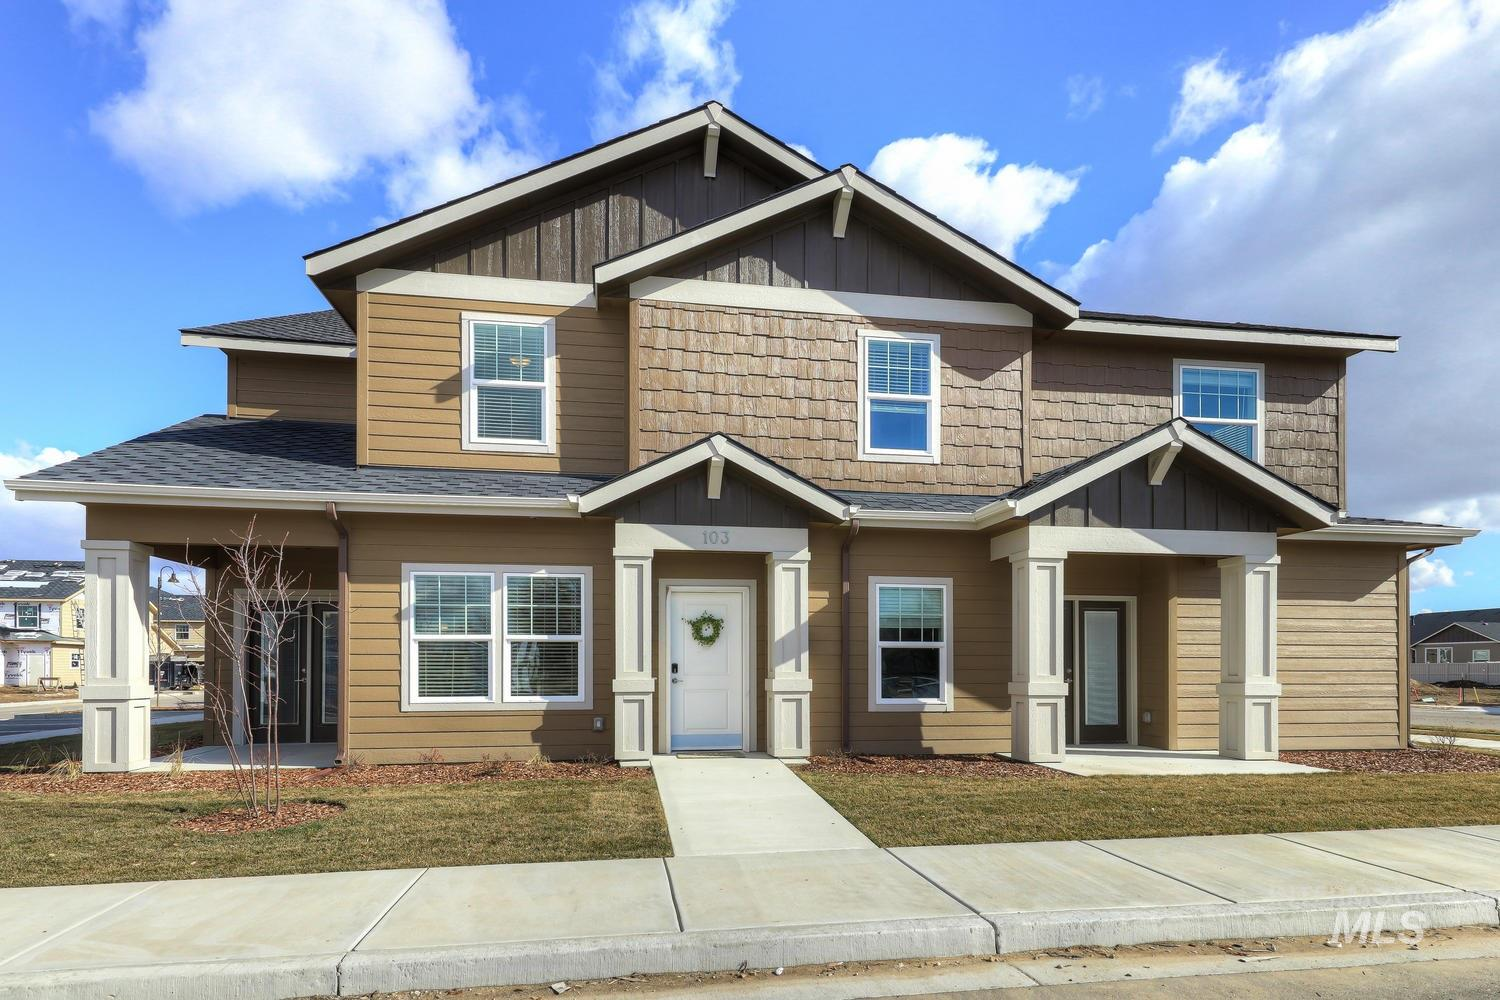 13451 Grand Lodge Lane, Caldwell, Idaho 83607, 2 Bedrooms, 2.5 Bathrooms, Rental For Rent, Price $1,350, 98780256